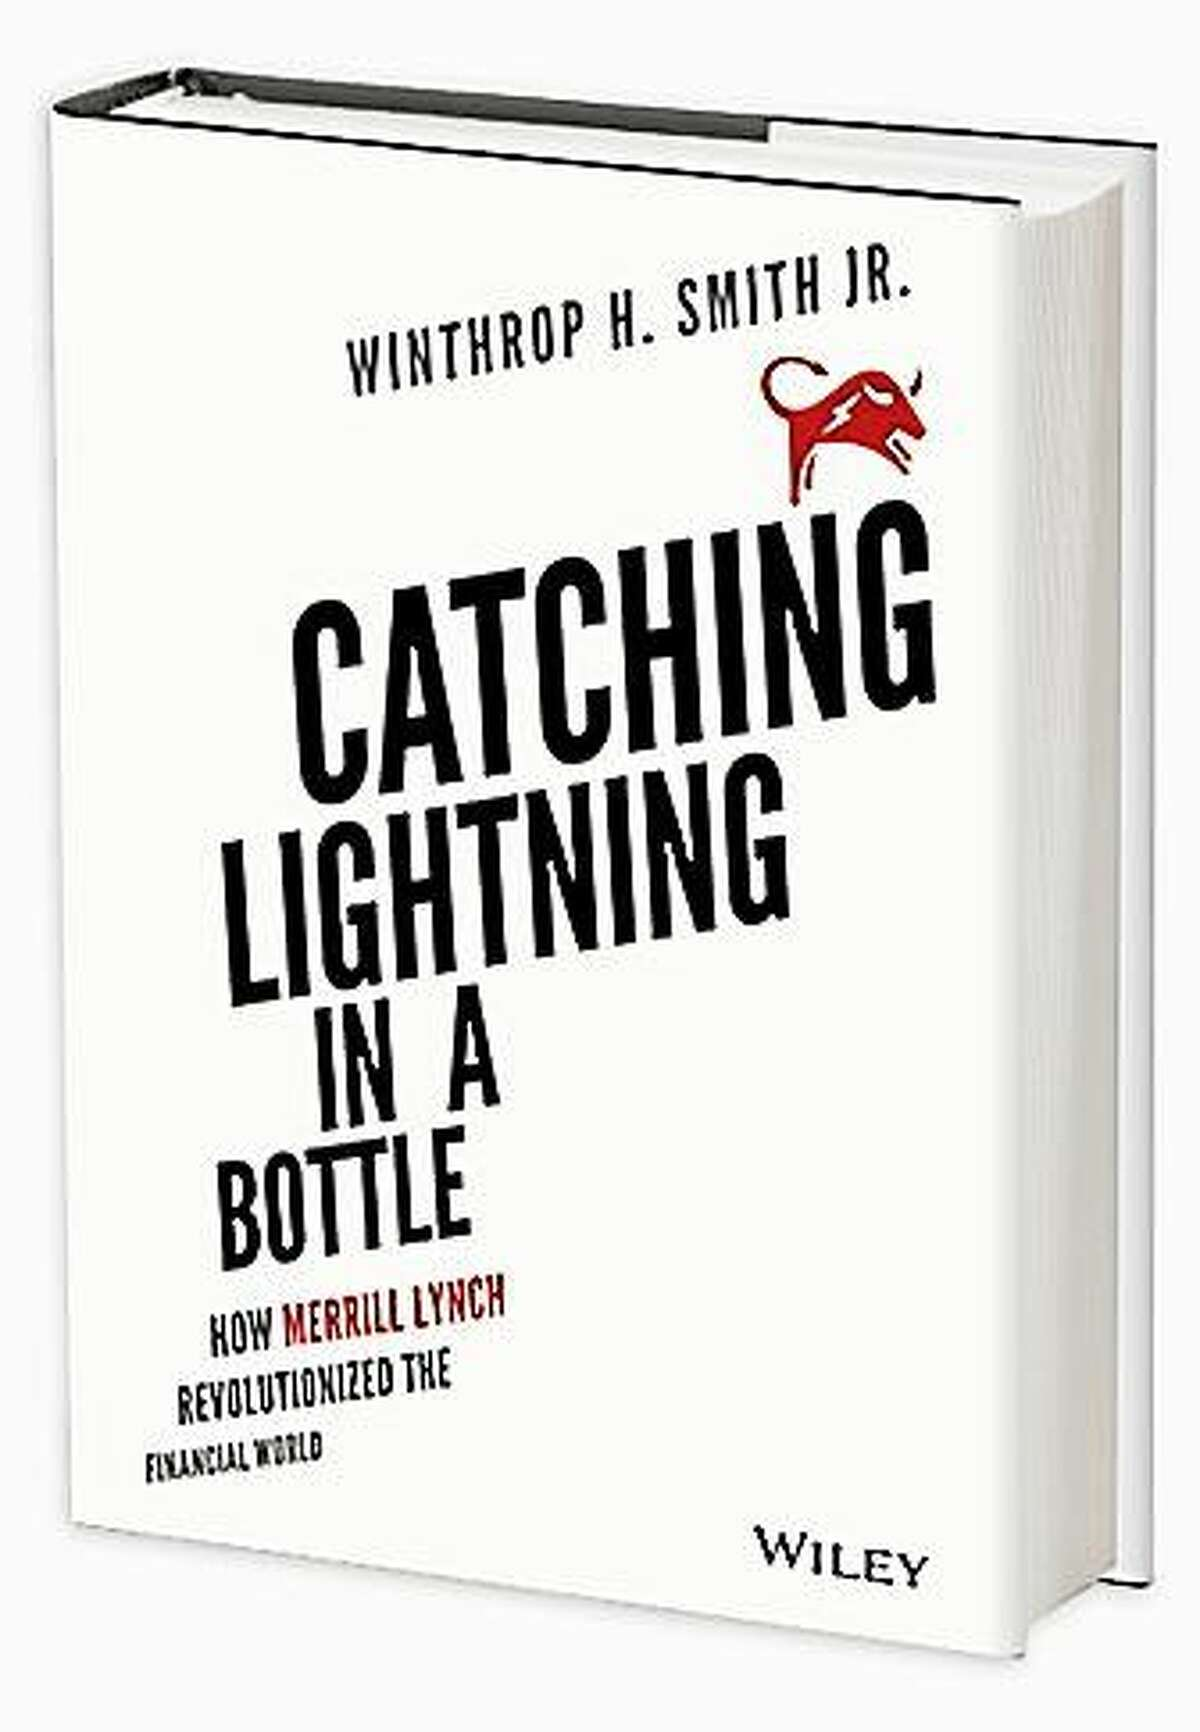 """Winthrop H. Smith Jr.'s book """"Cathing Lightning in a Bottle."""""""